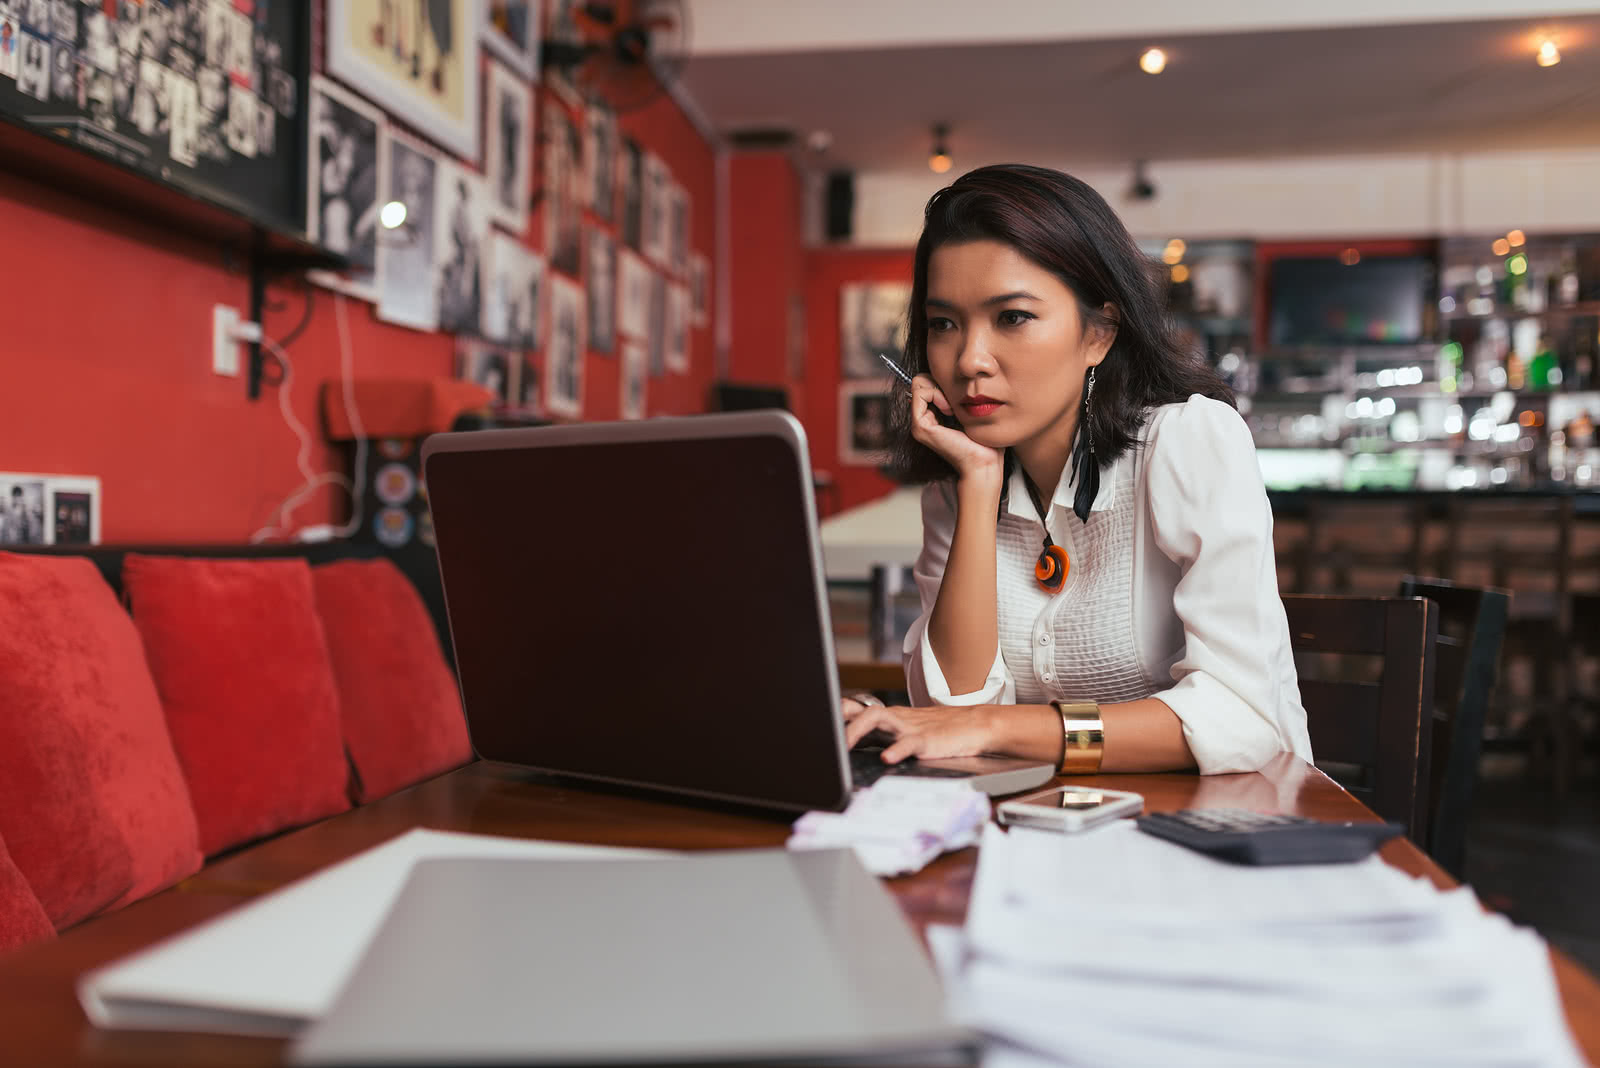 A restaurant owner searches for short-term loans for small business on laptop